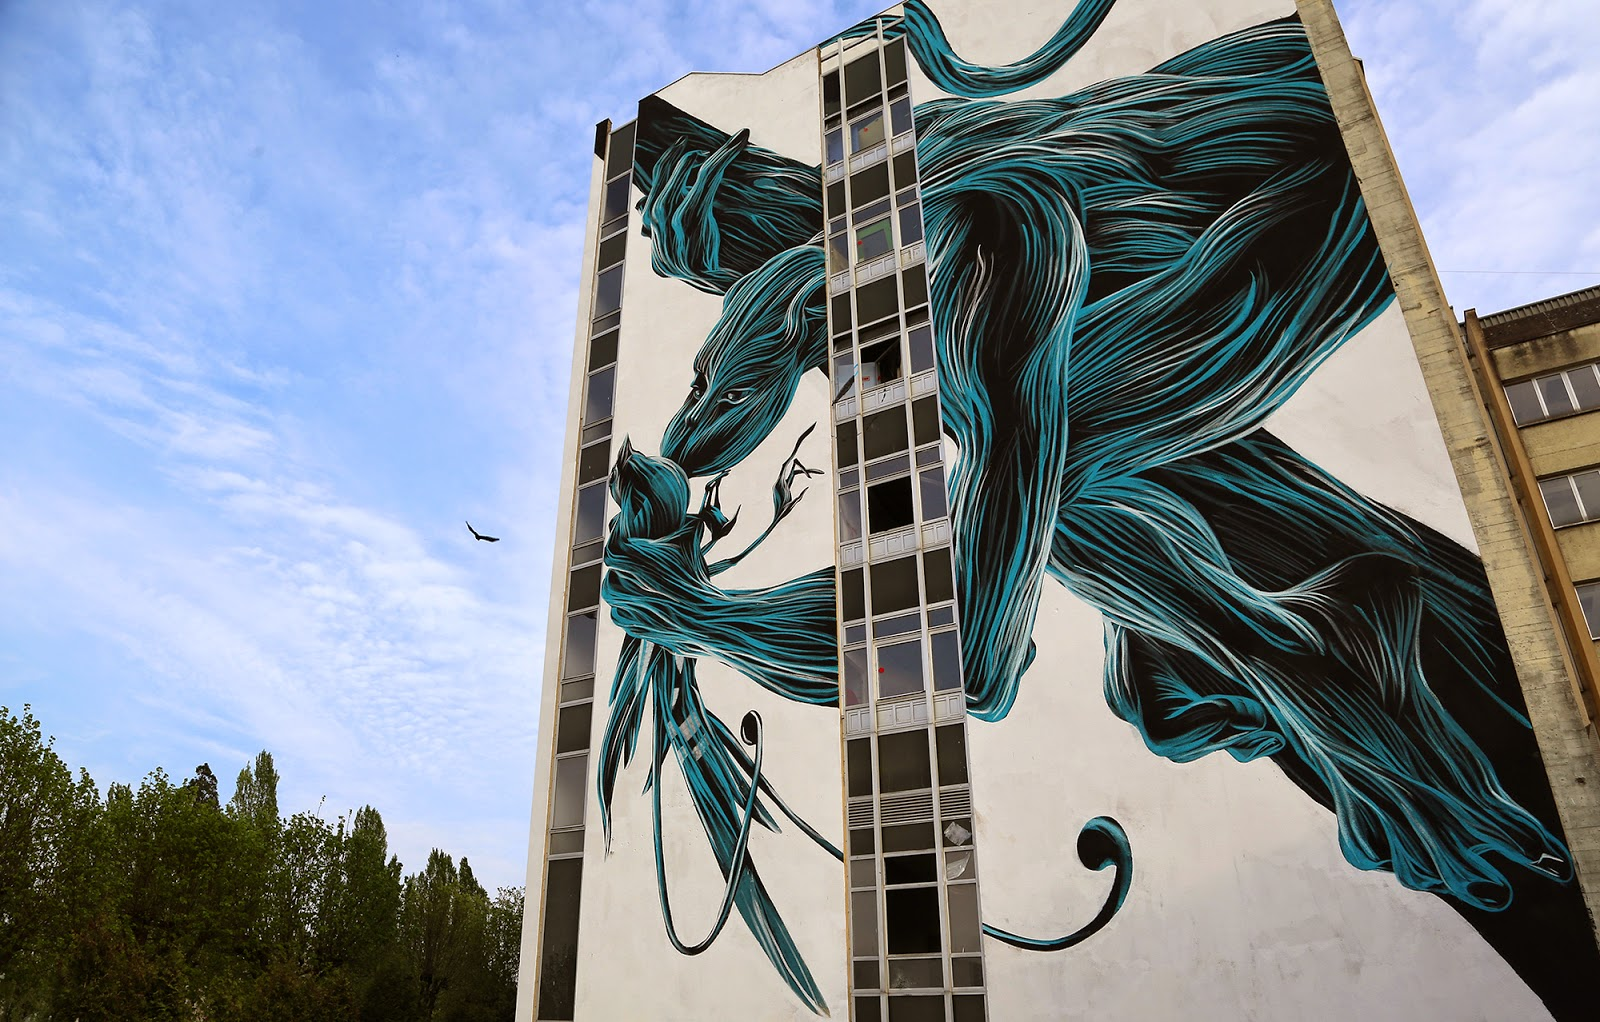 Portuguese artist Pantonio is currently in France where he spent the last few days working on this massive artwork somewhere on the streets of Lagny Sur Marne.